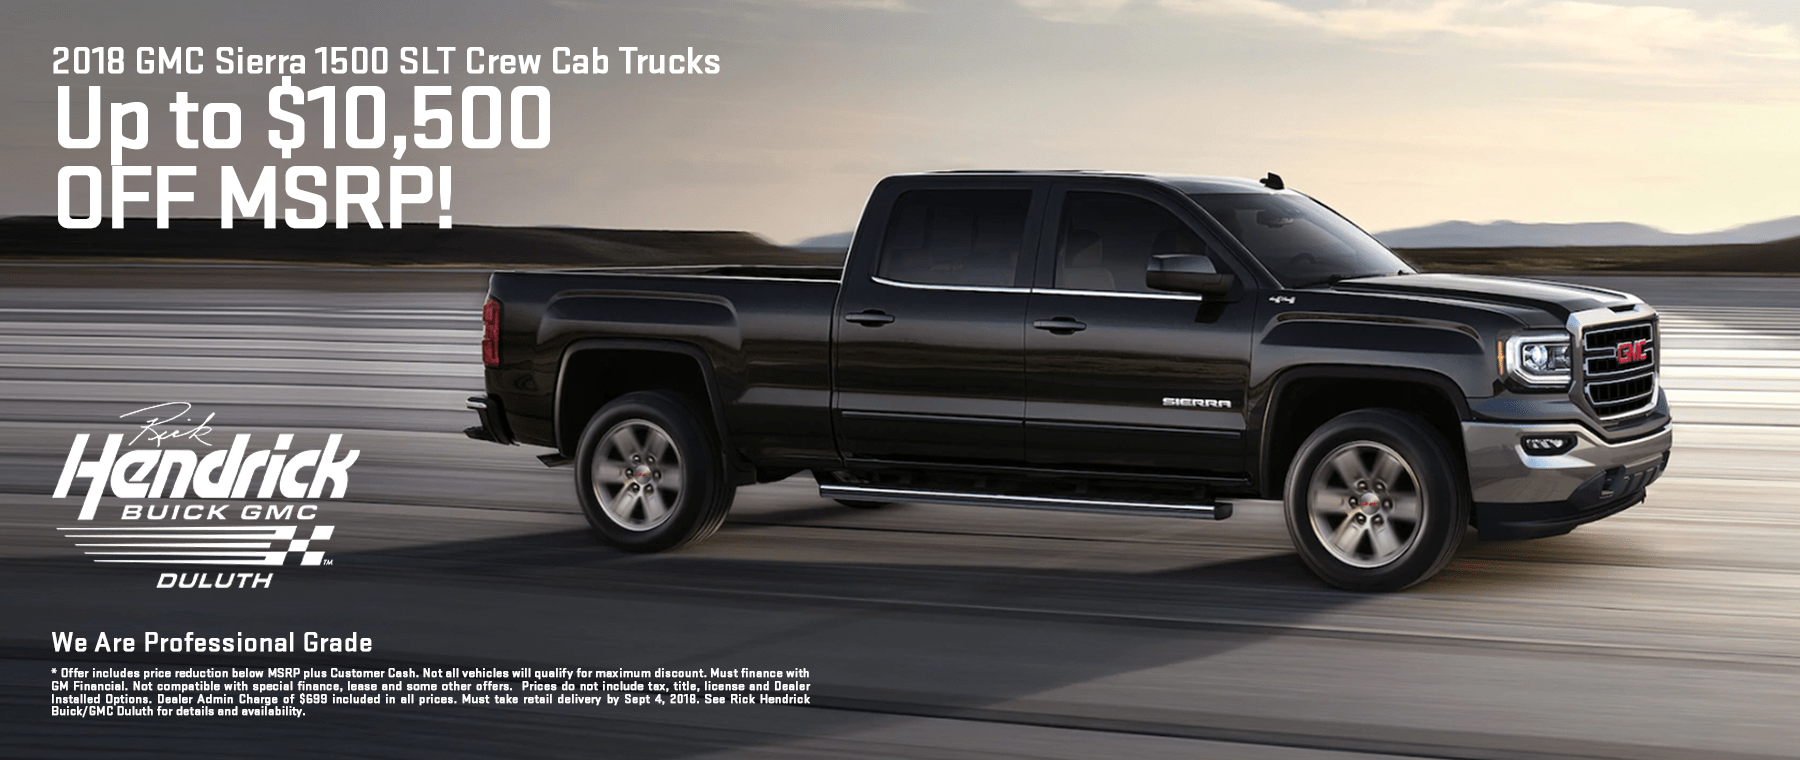 Buick-GMC-Duluth-Aug-2018-New-Car-Specials-sierra1500-1800X760